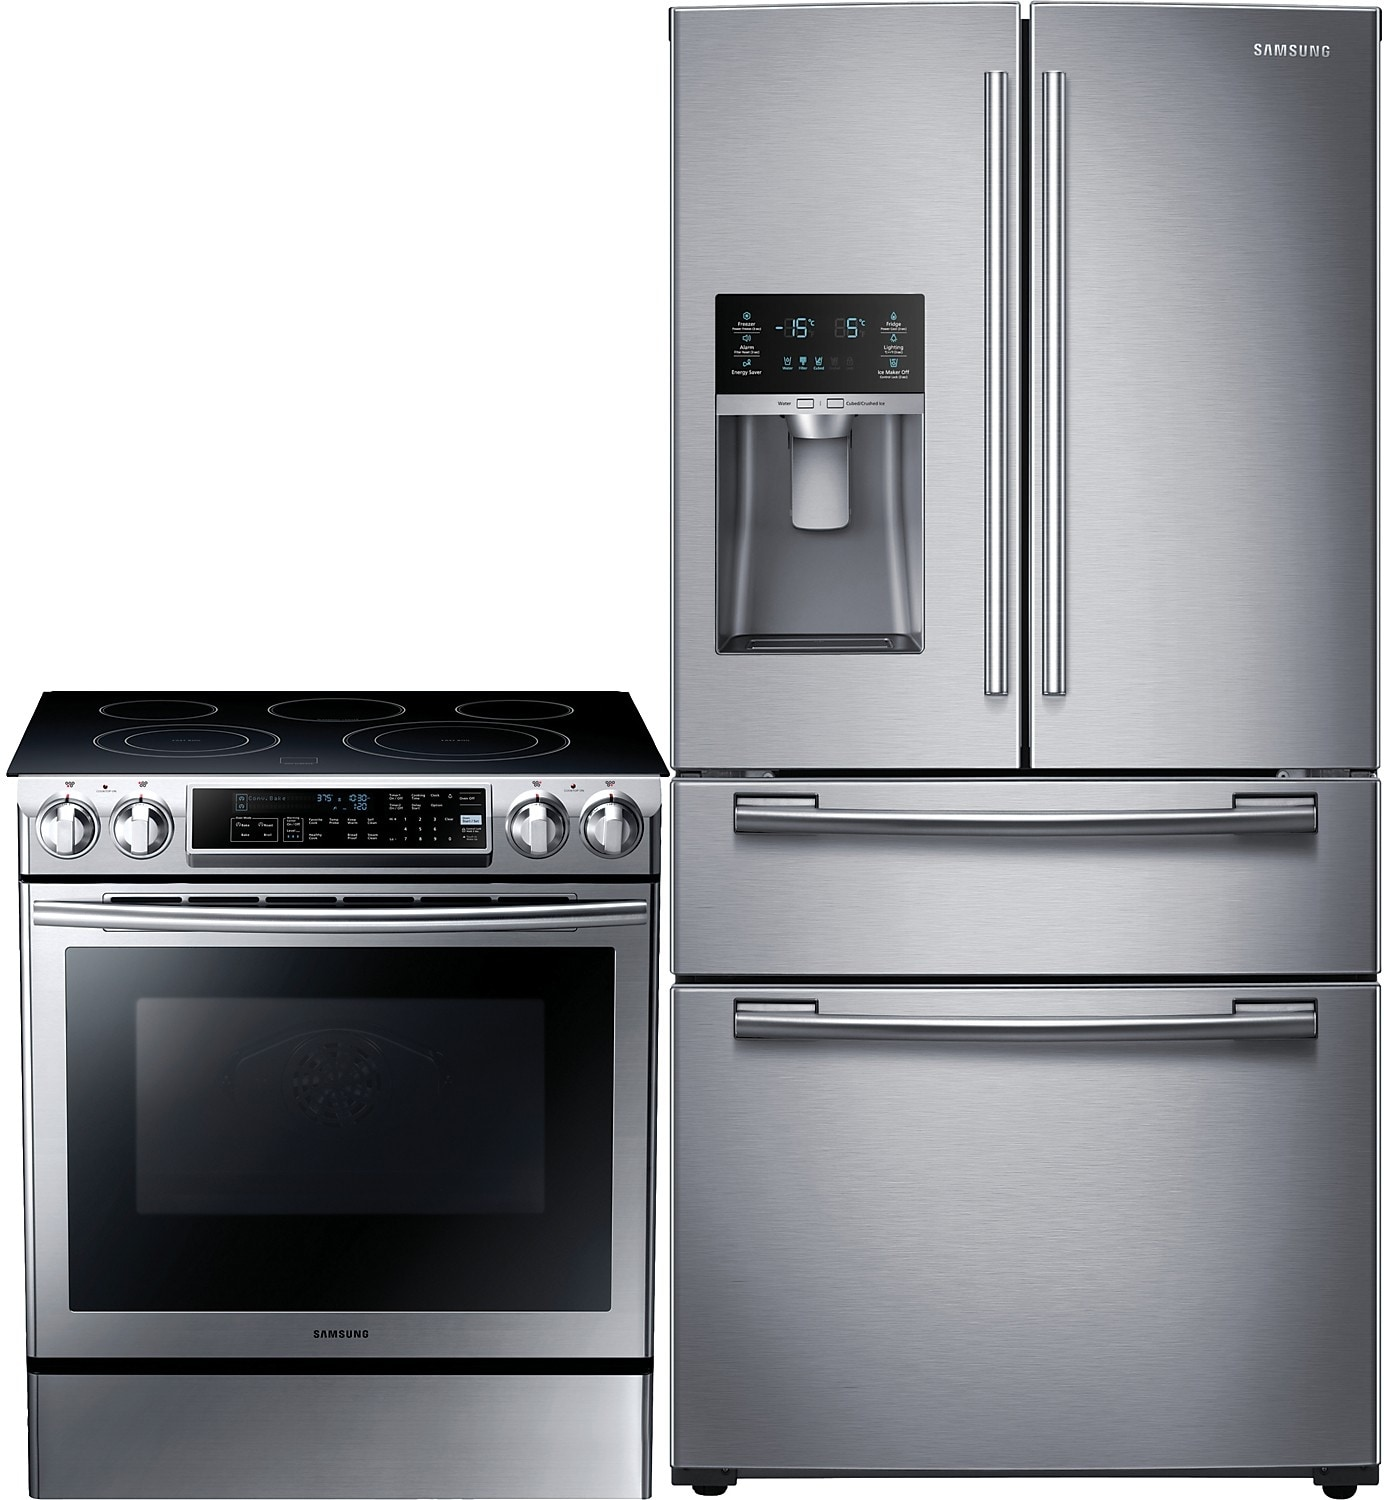 Refrigerators and Freezers - Samsung 25 Cu. Ft. French-Door Refrigerator and 5.8 Cu. Ft. Electric Range – Stainless Steel